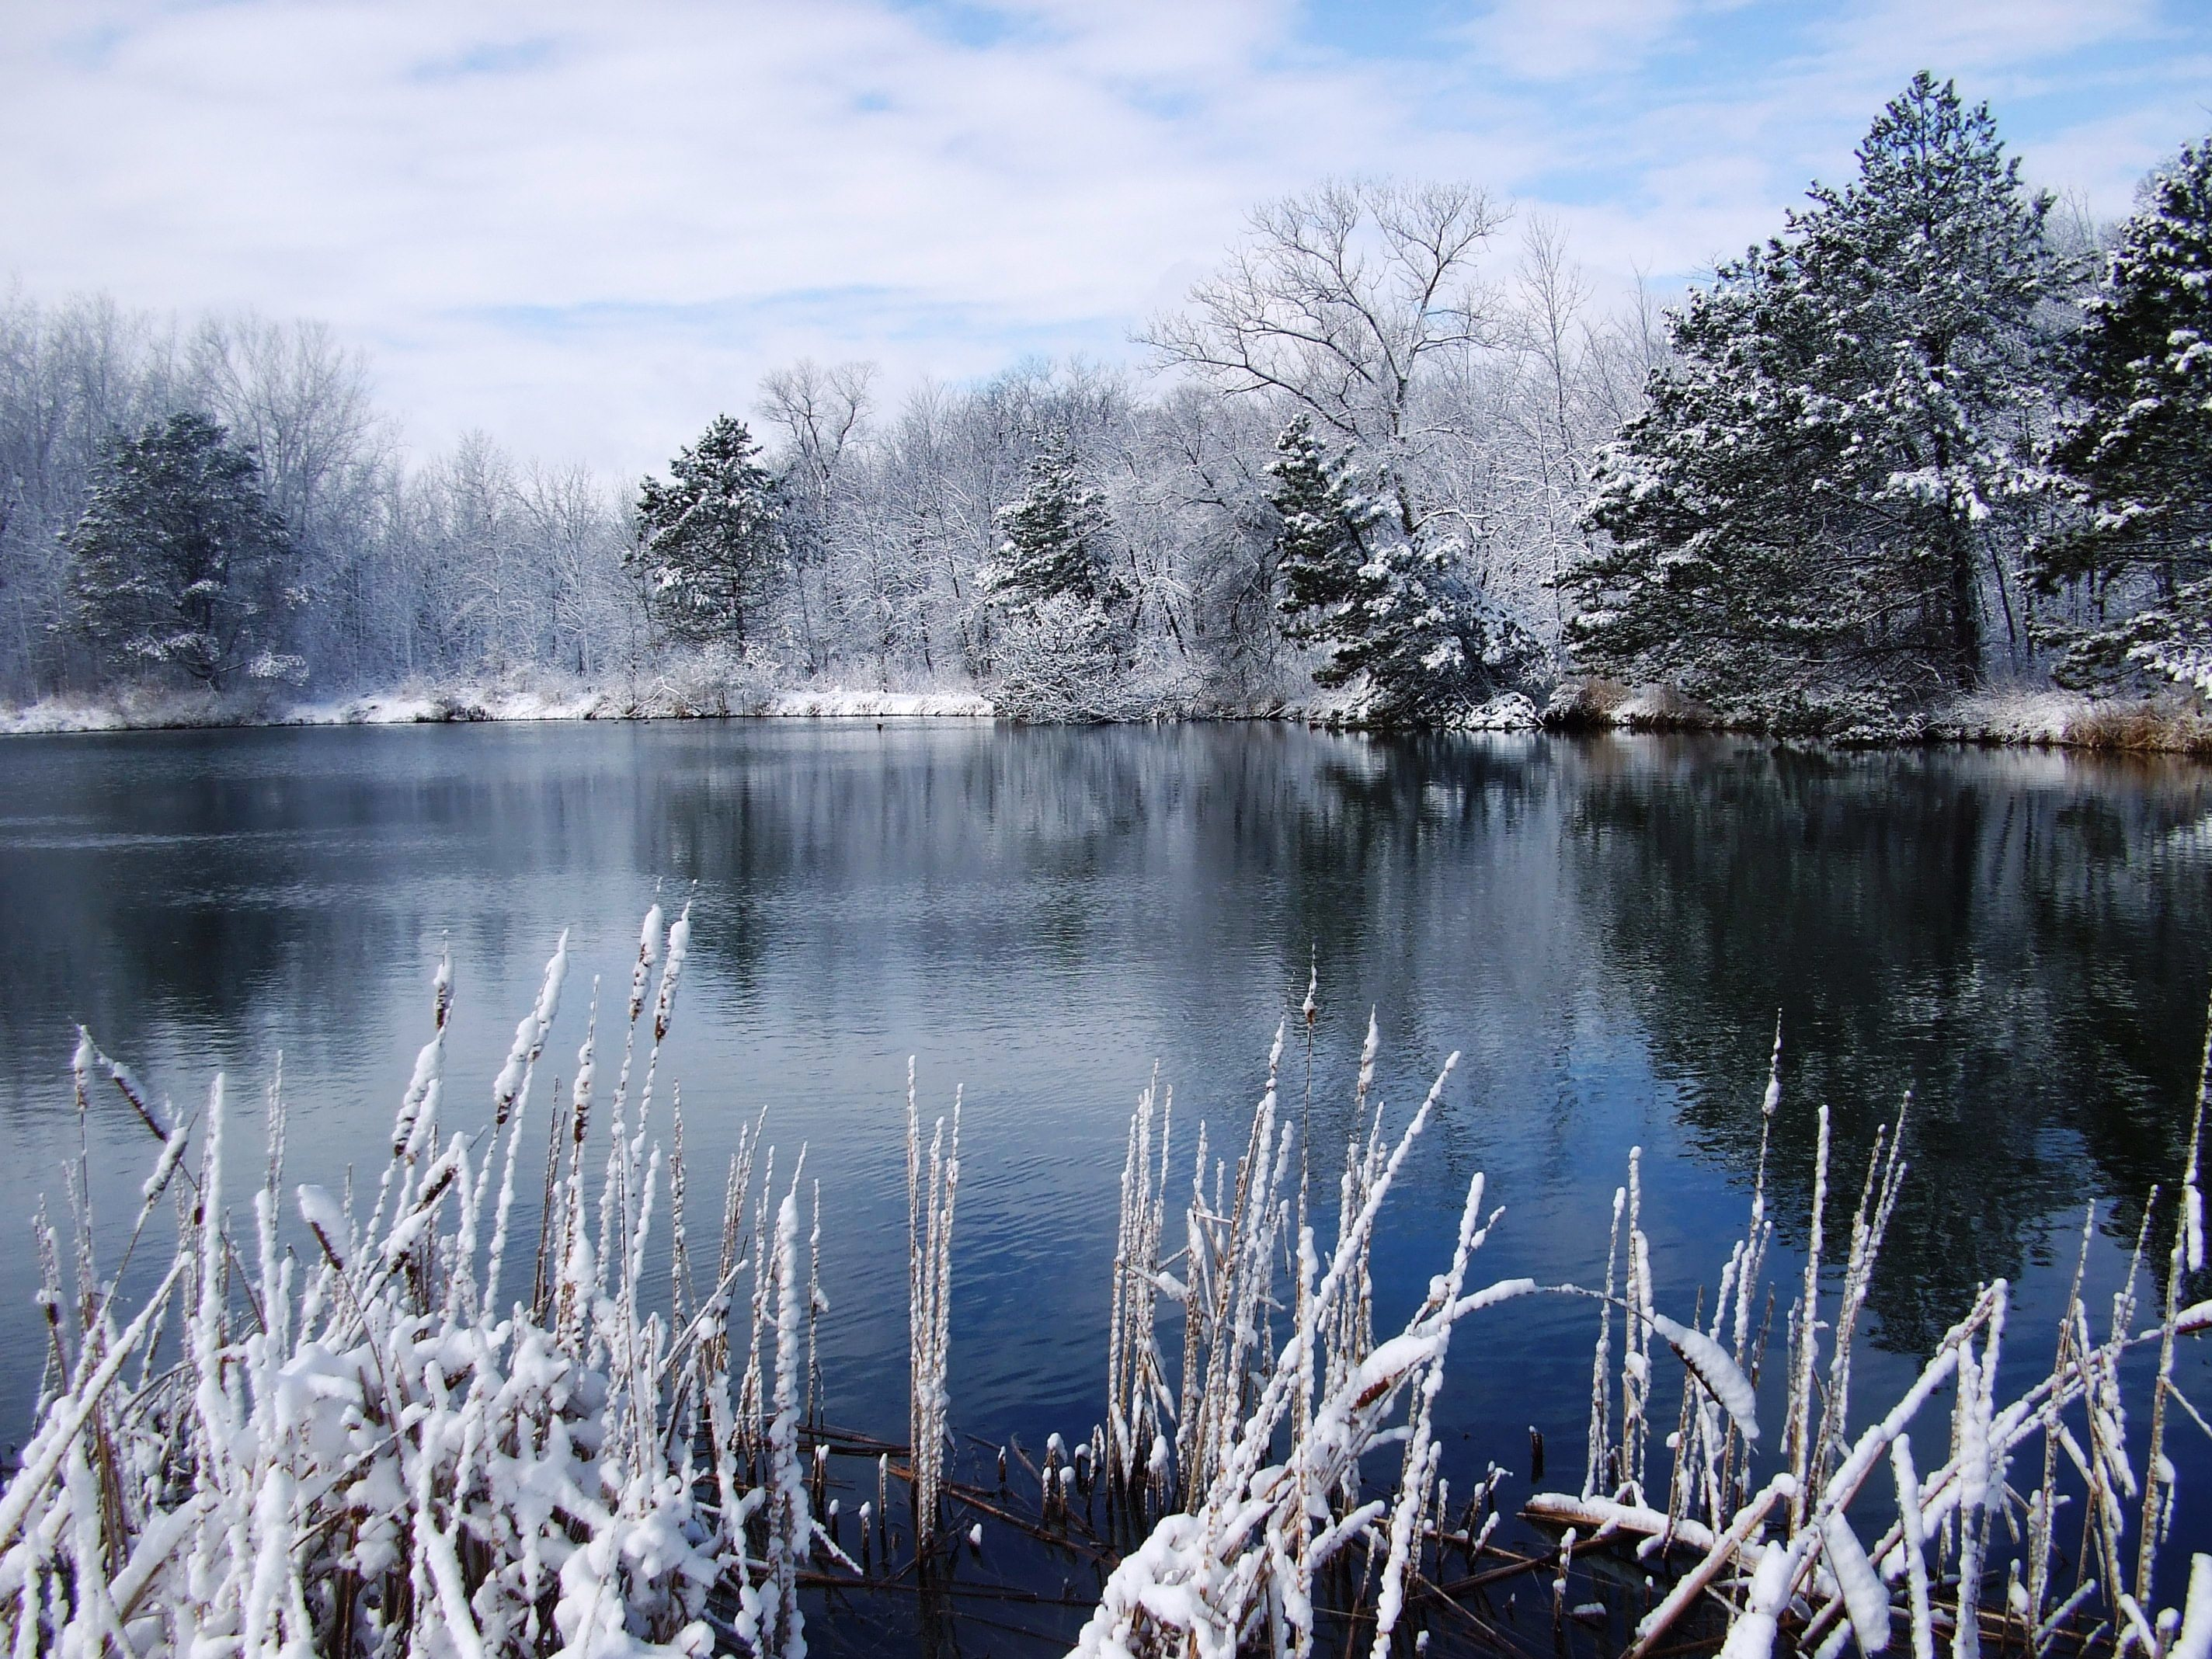 We say goodbye both to the beauty and the perseverance of this recent winter. Photo: Dave Giese, Fermilab Natural Areas